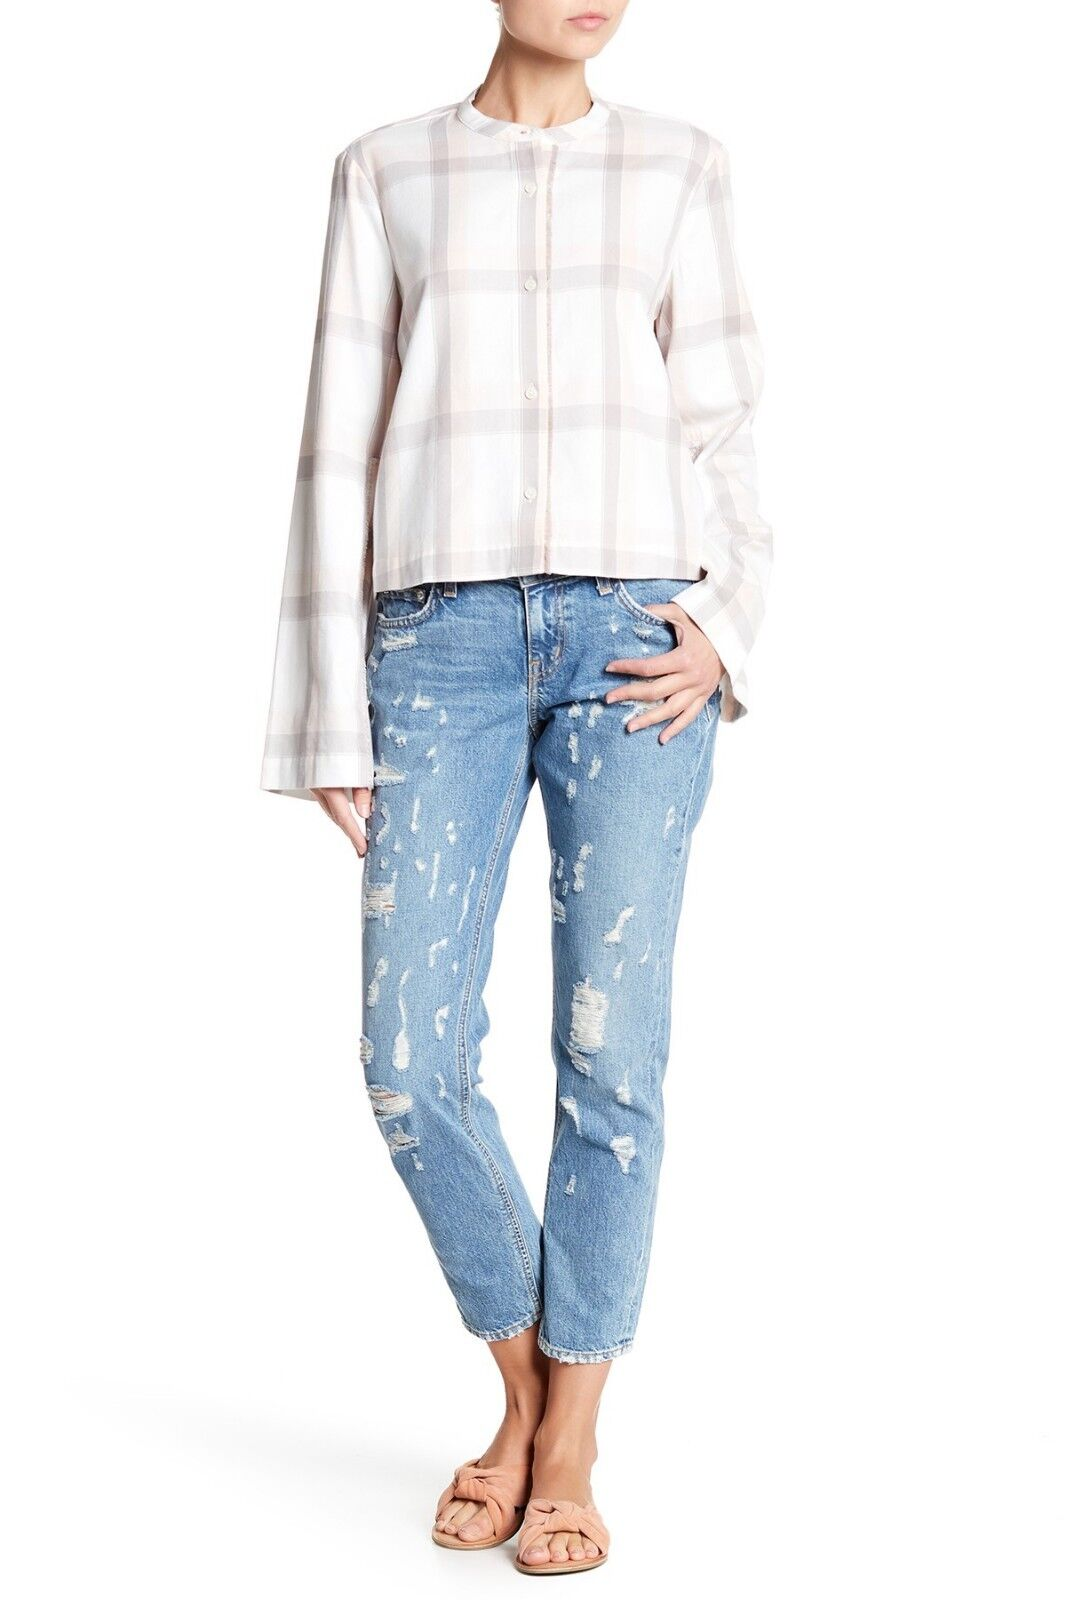 10 CROSBY DEREK LAM Mila Distressed Mid Rise Girlfriend Jeans Size 29 NWT  325